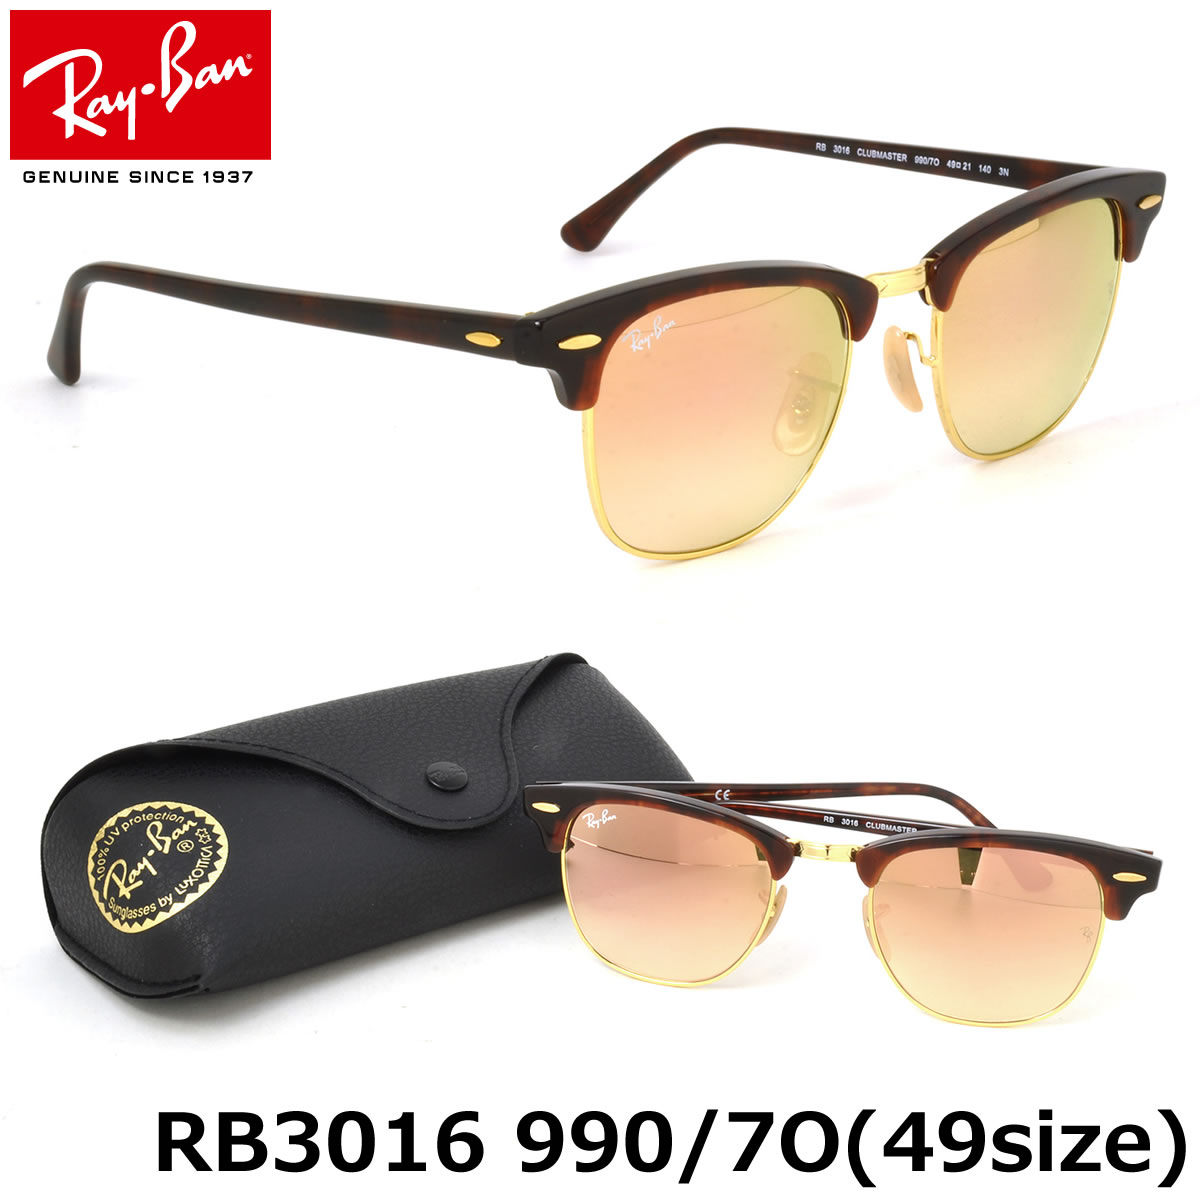 1b2924fbc RB3016 CLUBMASTER (club master) is a model for 09 years of the THE ICONS  collection. The club master added a taste of Ray-Ban to the material by the  design ...